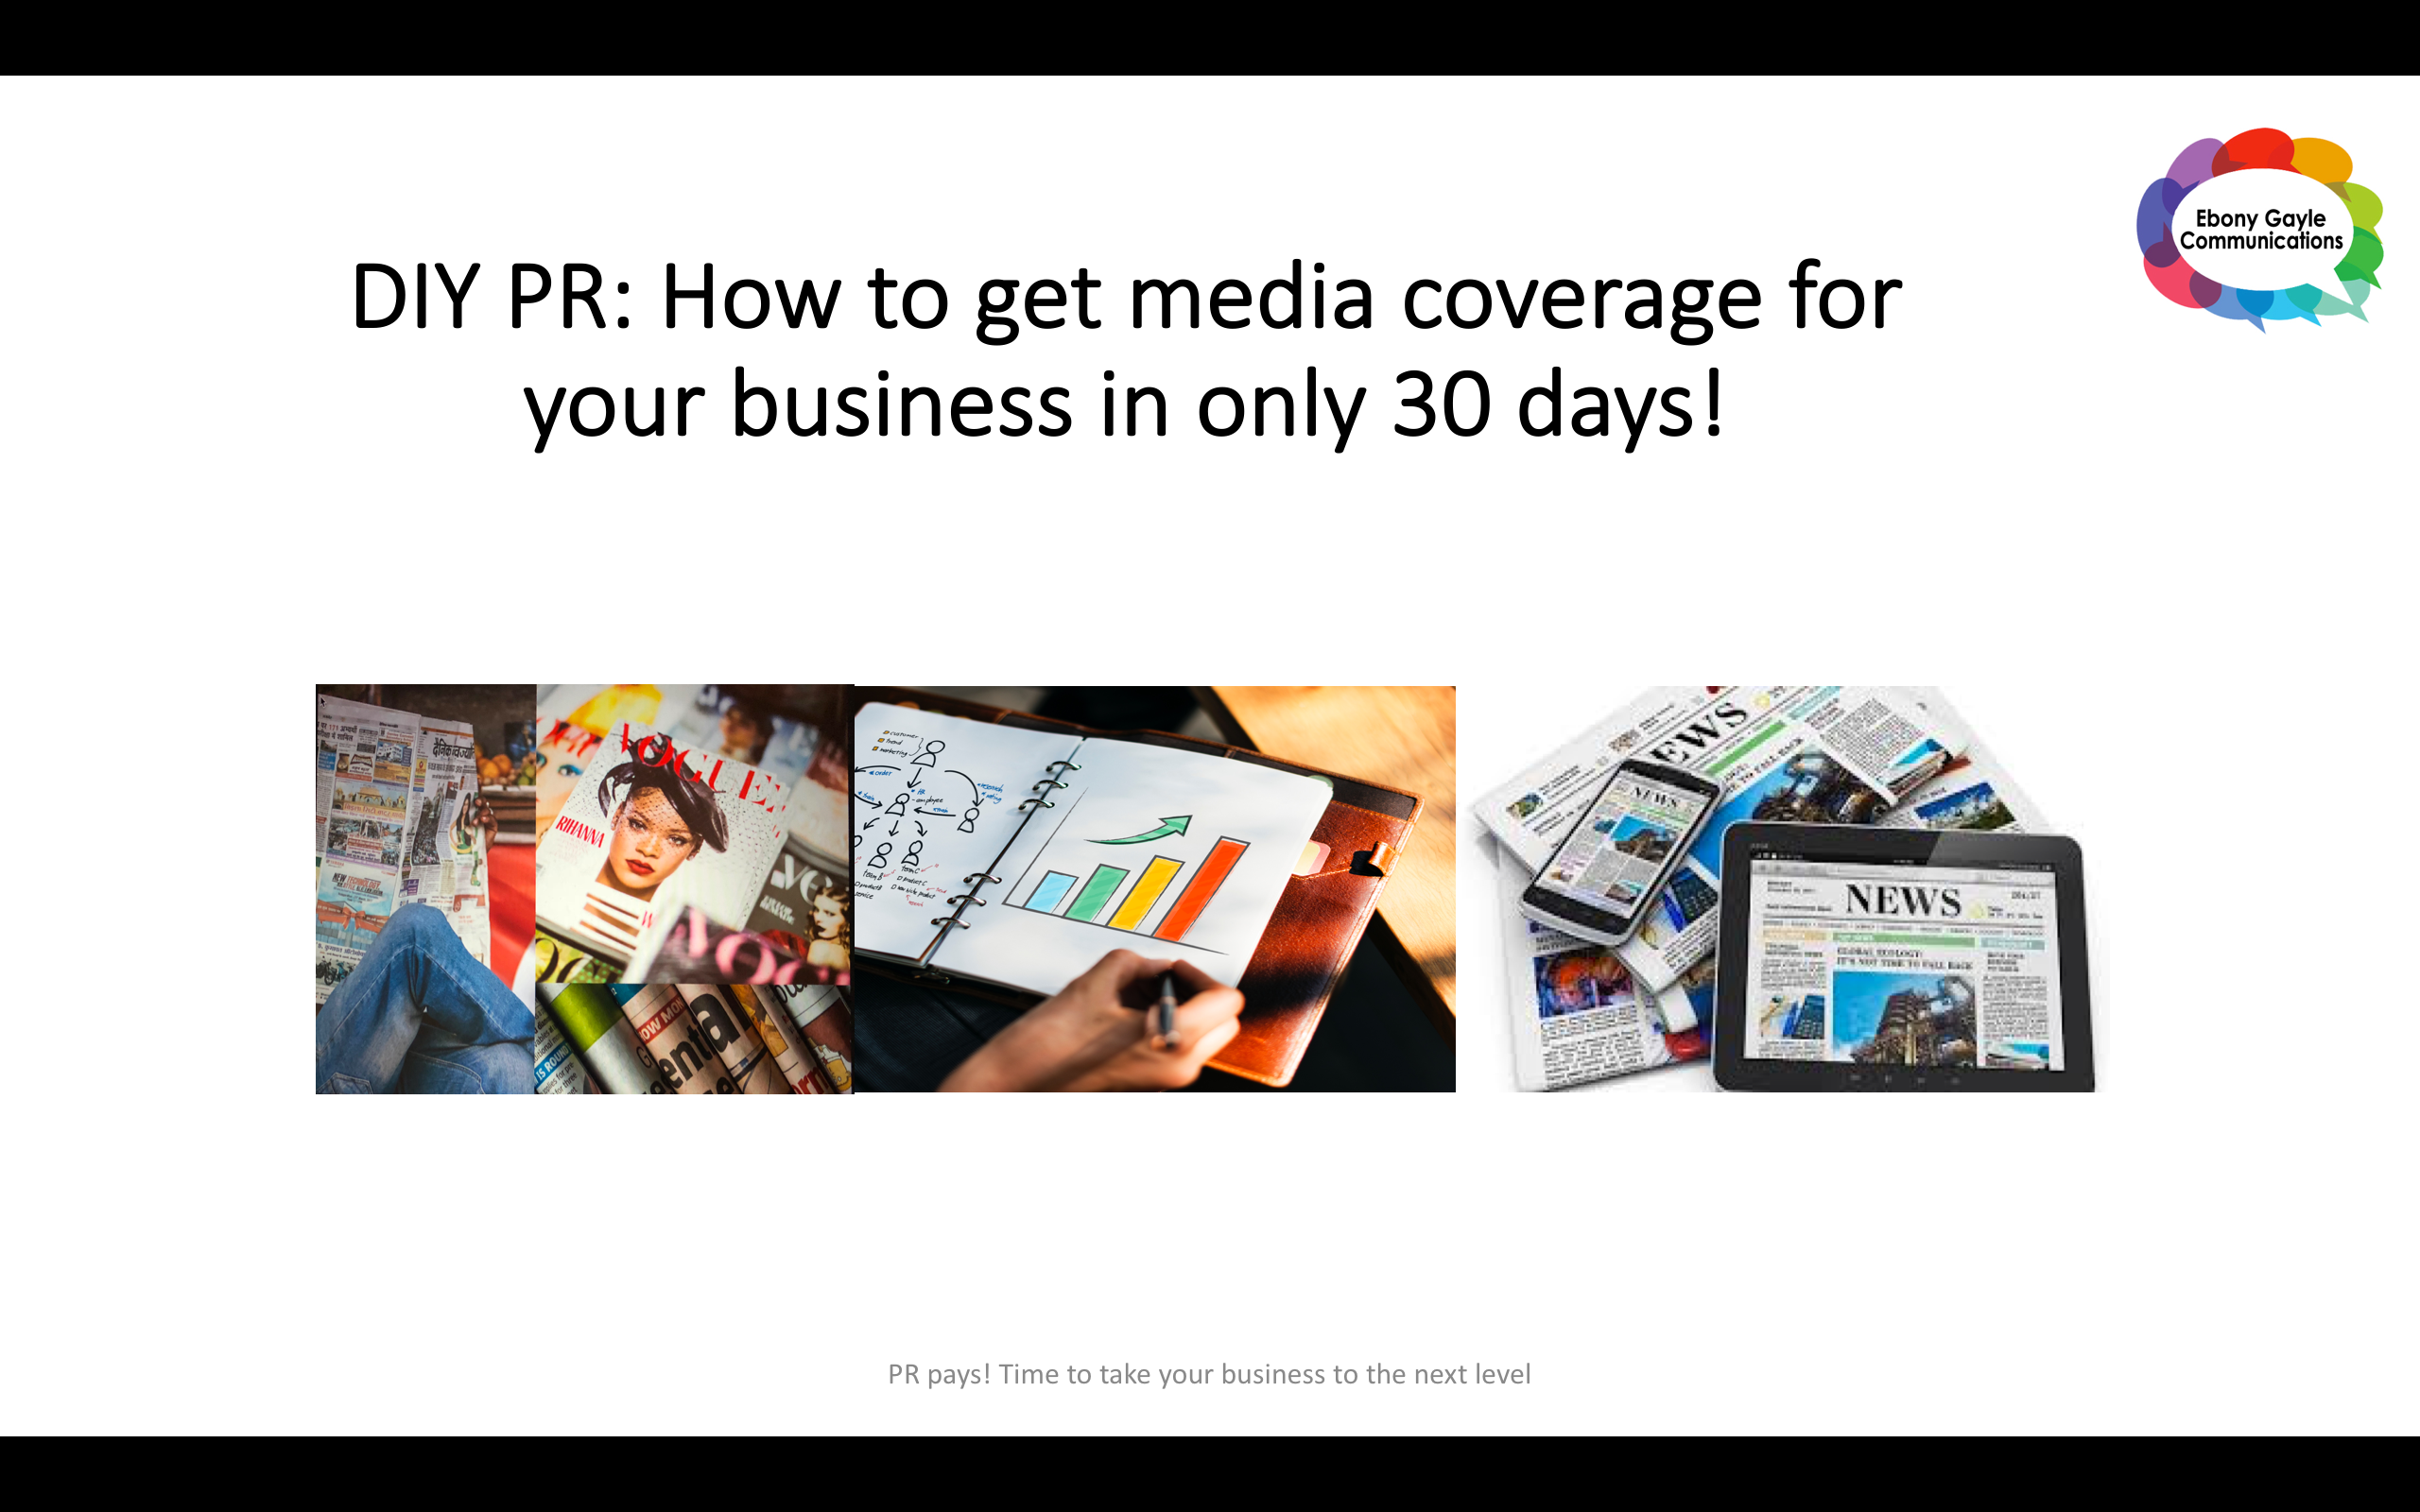 DIY PR: How to secure media coverage, increase sales and credibility in 30 days